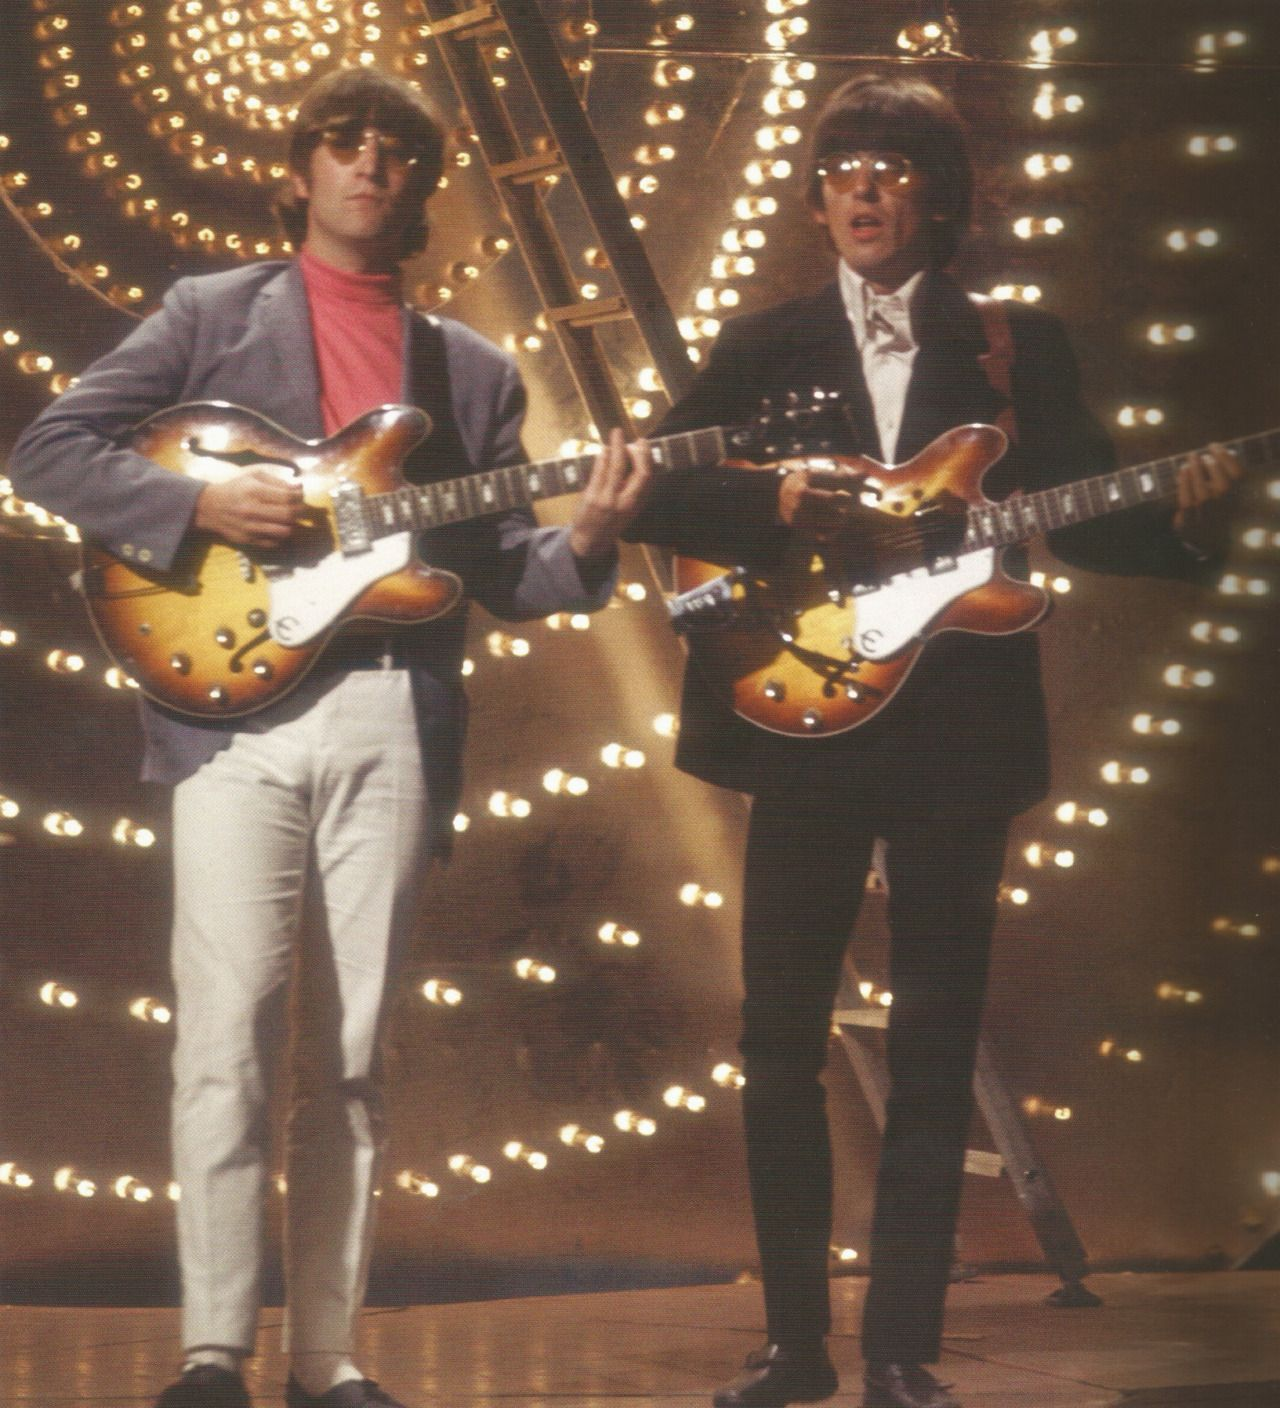 The Beatles' Top Of the Pops rehearsal, 1966